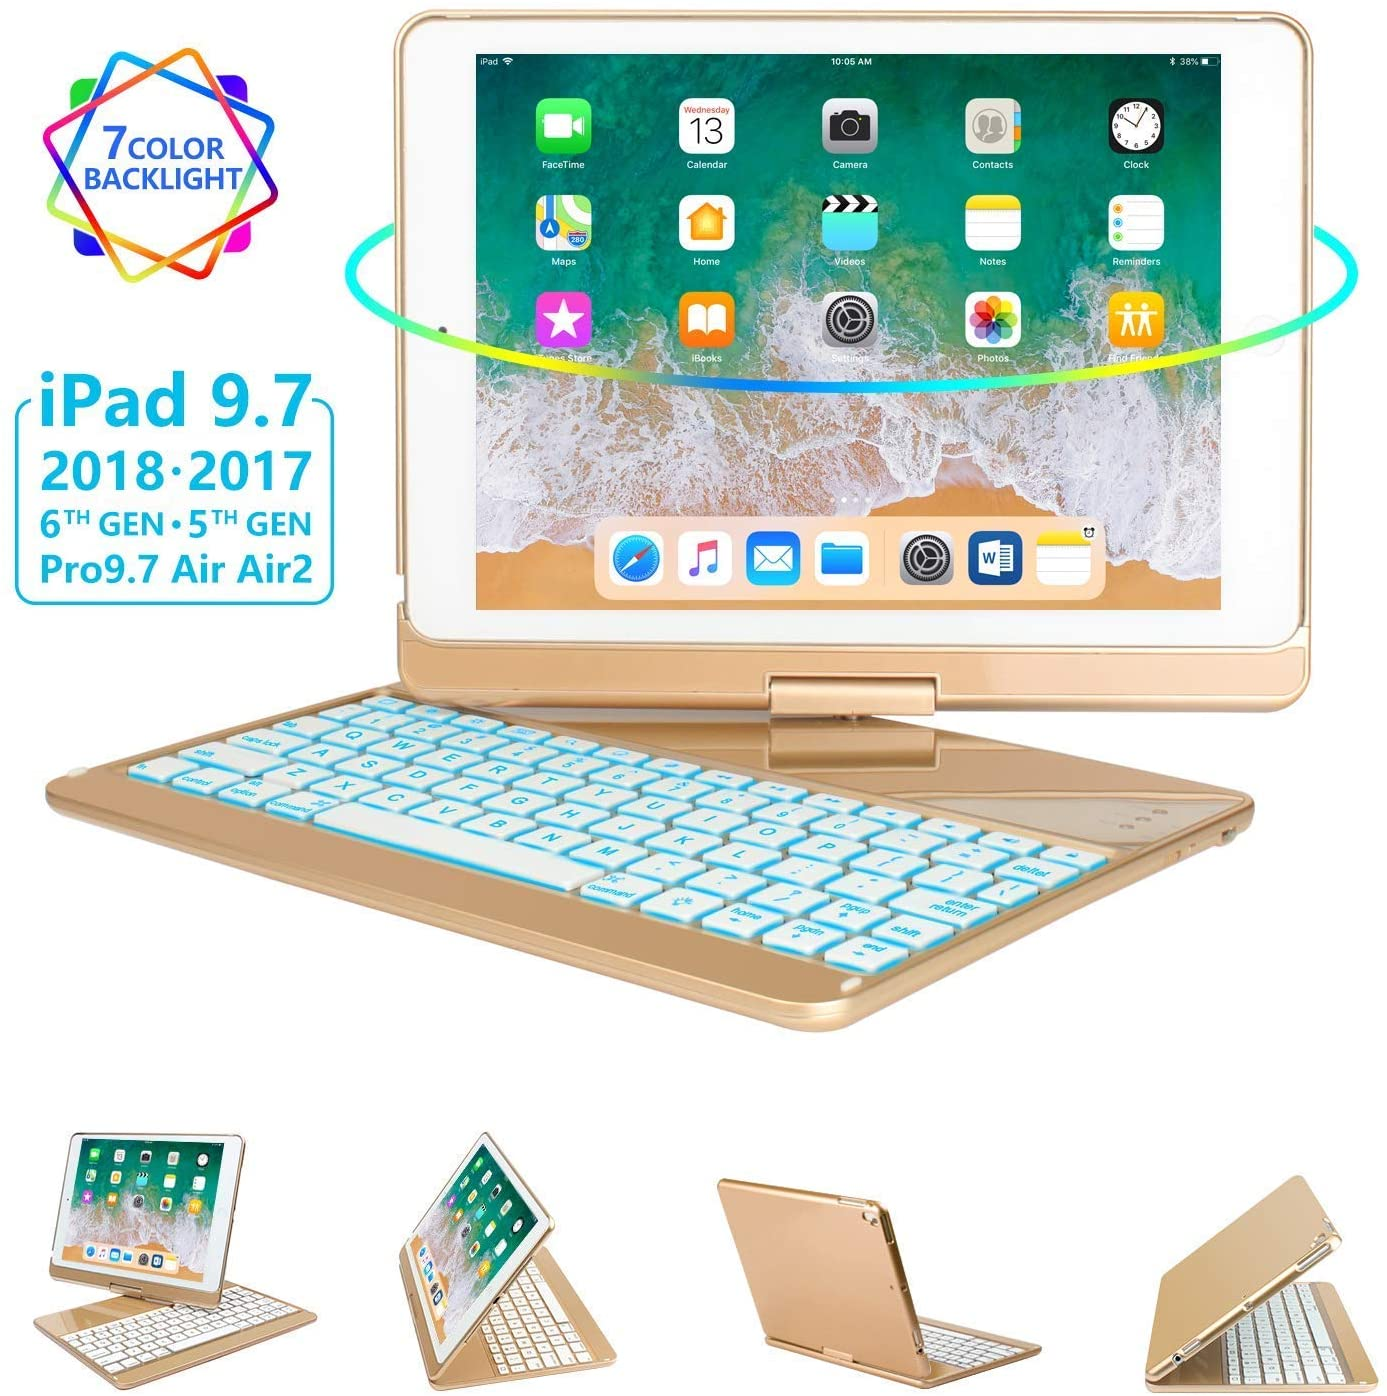 iPad Keyboard Case 9.7 for iPad 2018 (6th Gen) - 2017(5th Gen) - iPad Pro 9.7 - Air 2 & 1, 360 Rotate 7 Color Backlit Wireless/BT iPad Case with Keyboard, Auto Sleep Wake, 9.7 inch, Gold